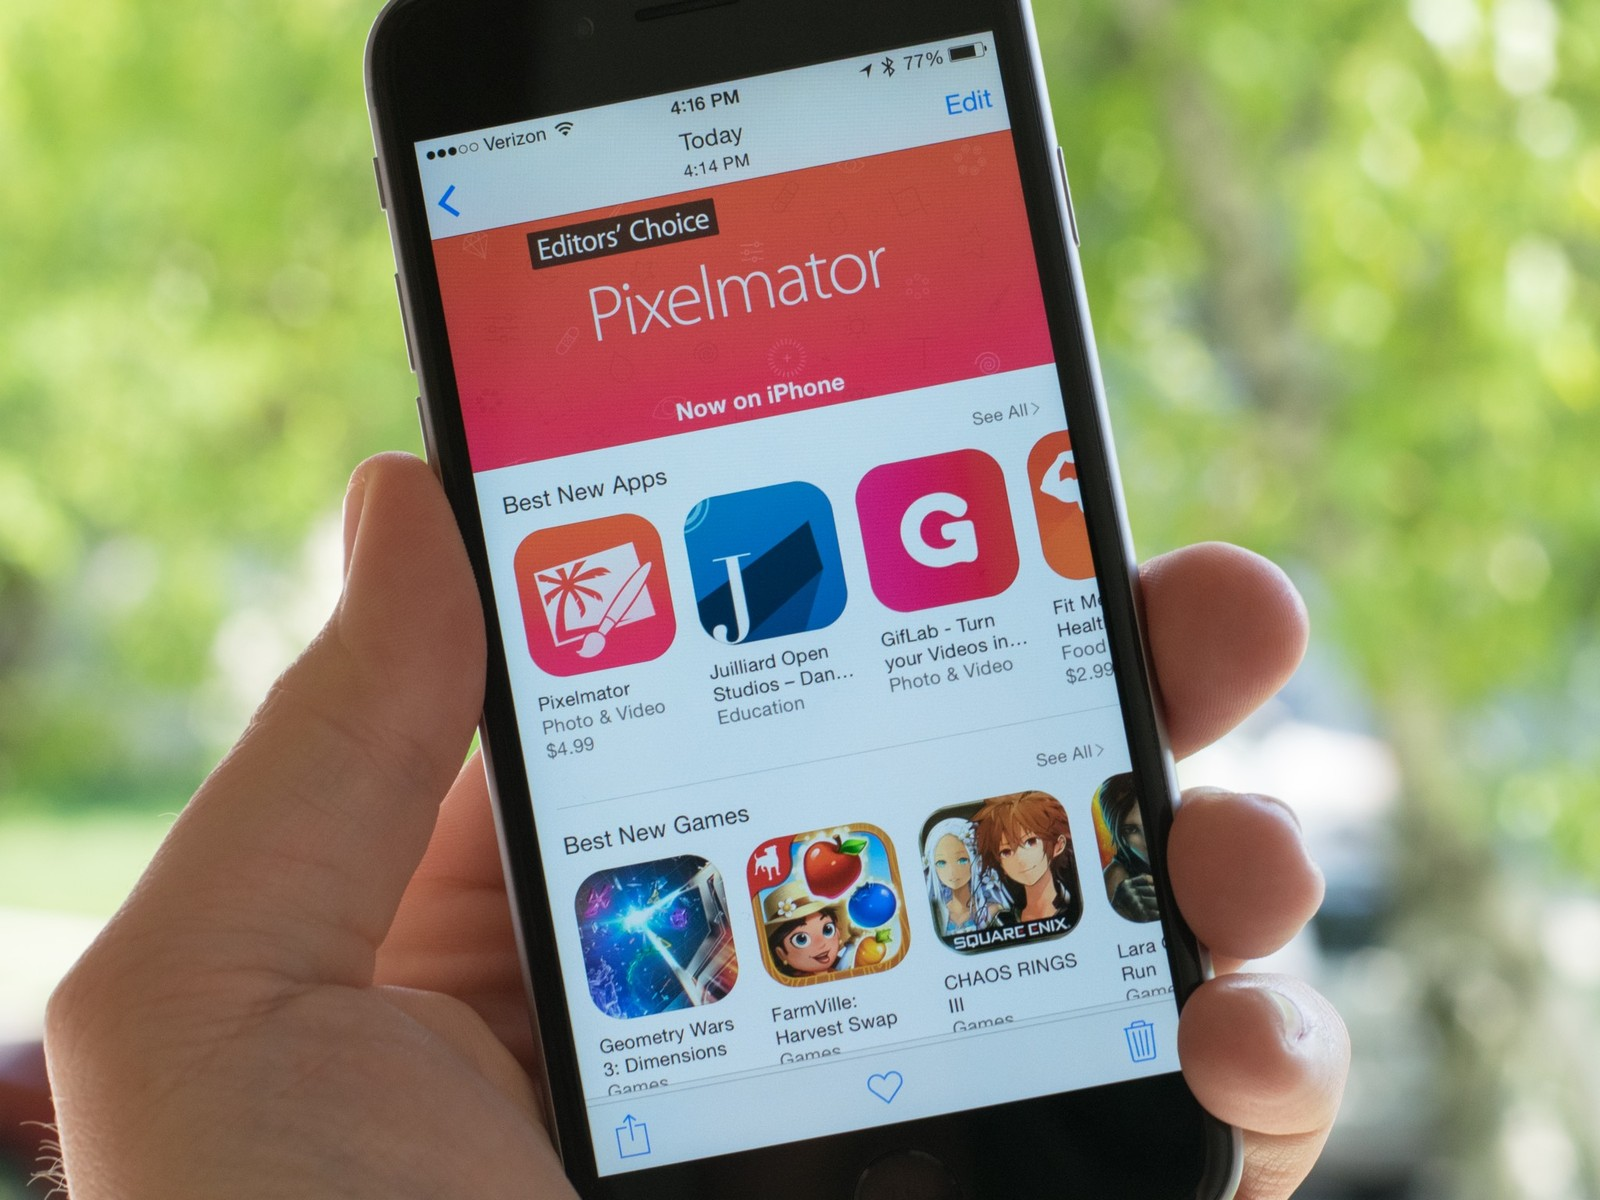 How to save money when the price increase in the iTunes Store